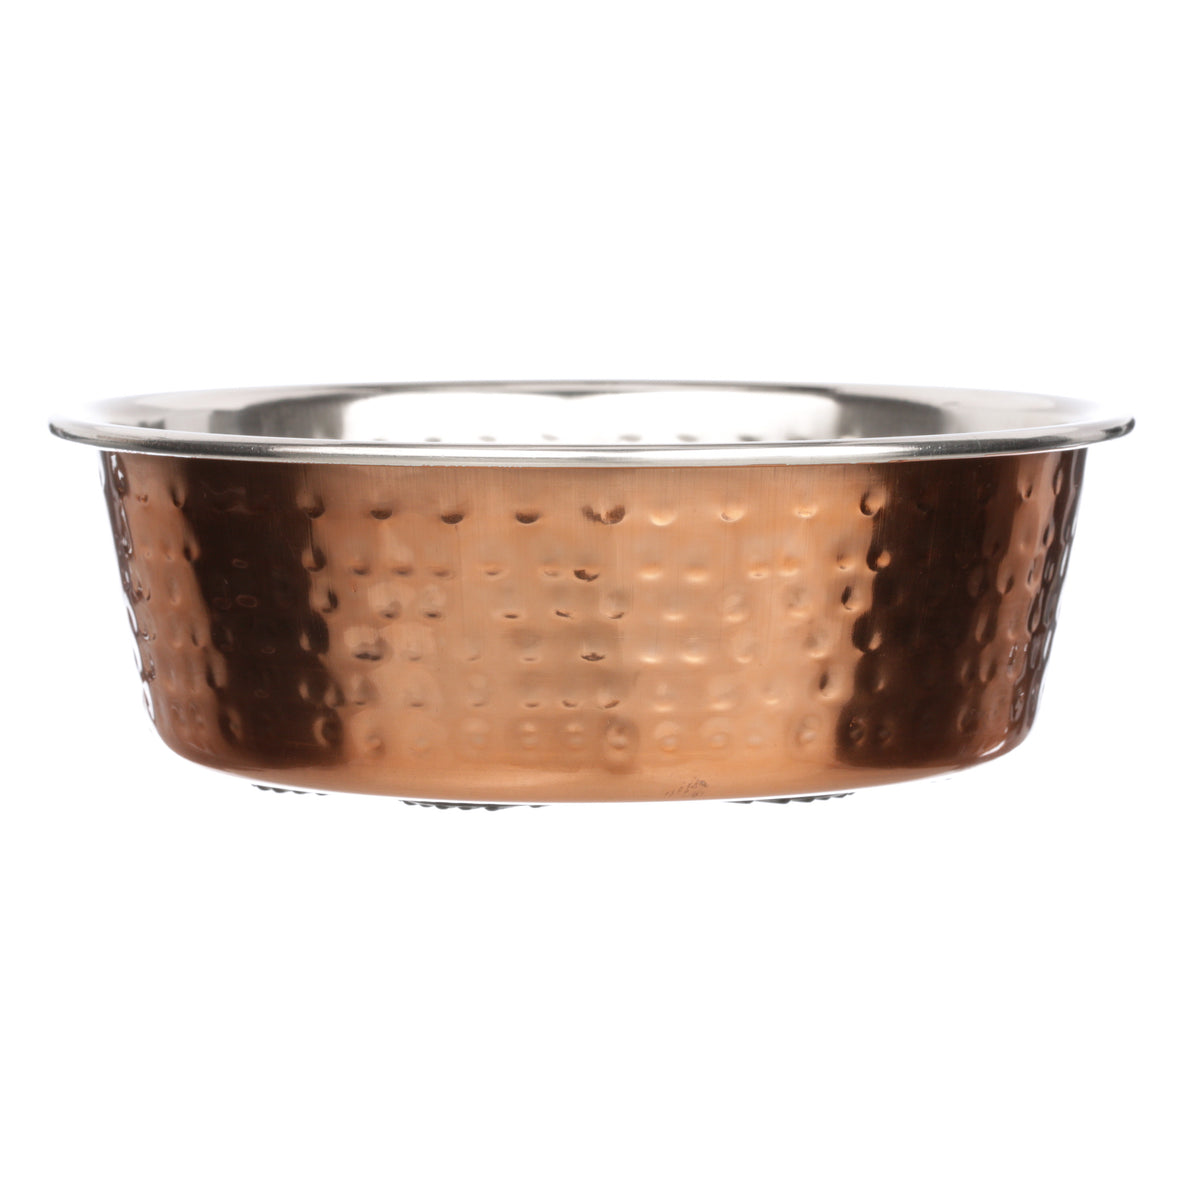 Hammered Copper Finish Bowls